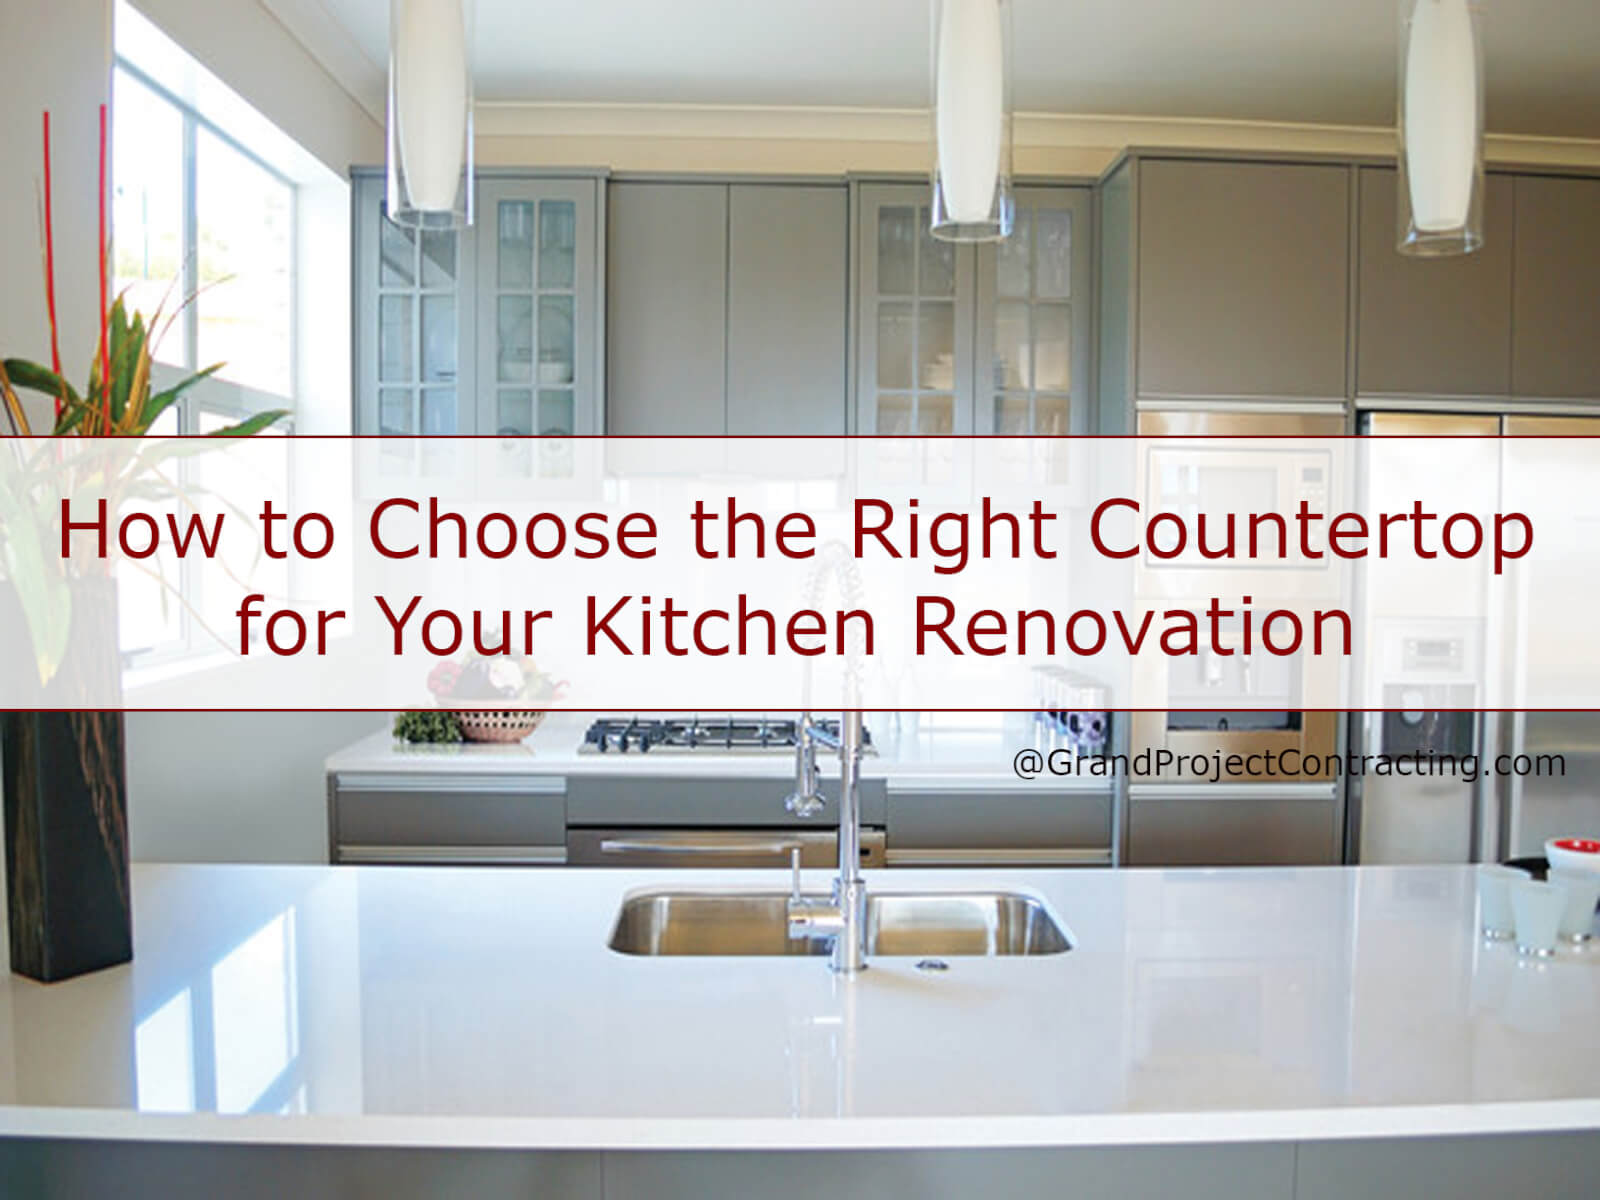 How to choose the right countertop for your kitchen renovation